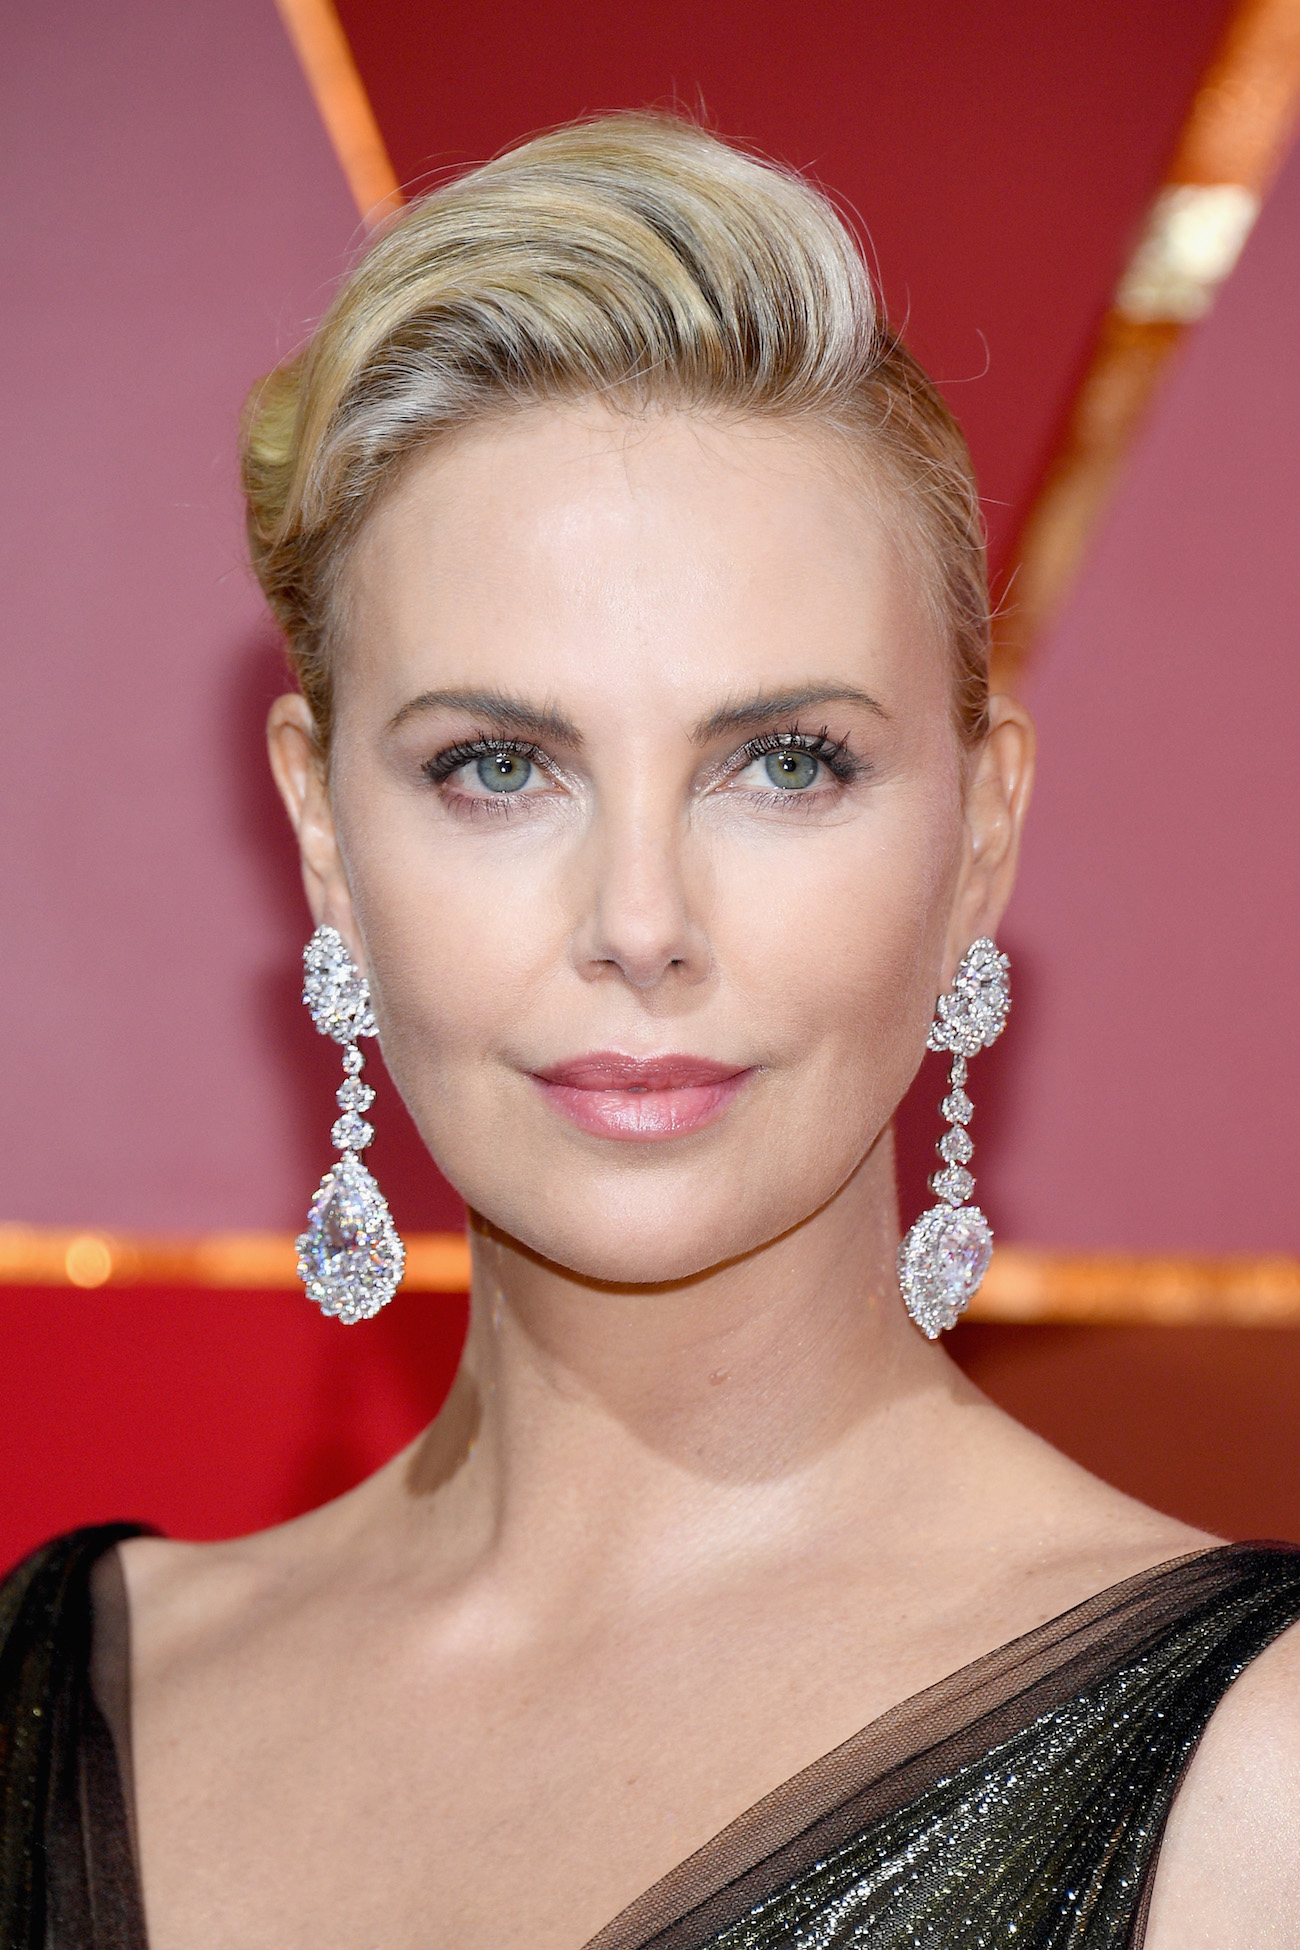 HOLLYWOOD, CA - FEBRUARY 26: Actor Charlize Theron attends the 89th Annual Academy Awards at Hollywood & Highland Center on February 26, 2017 in Hollywood, California. (Photo by Kevork Djansezian/Getty Images)